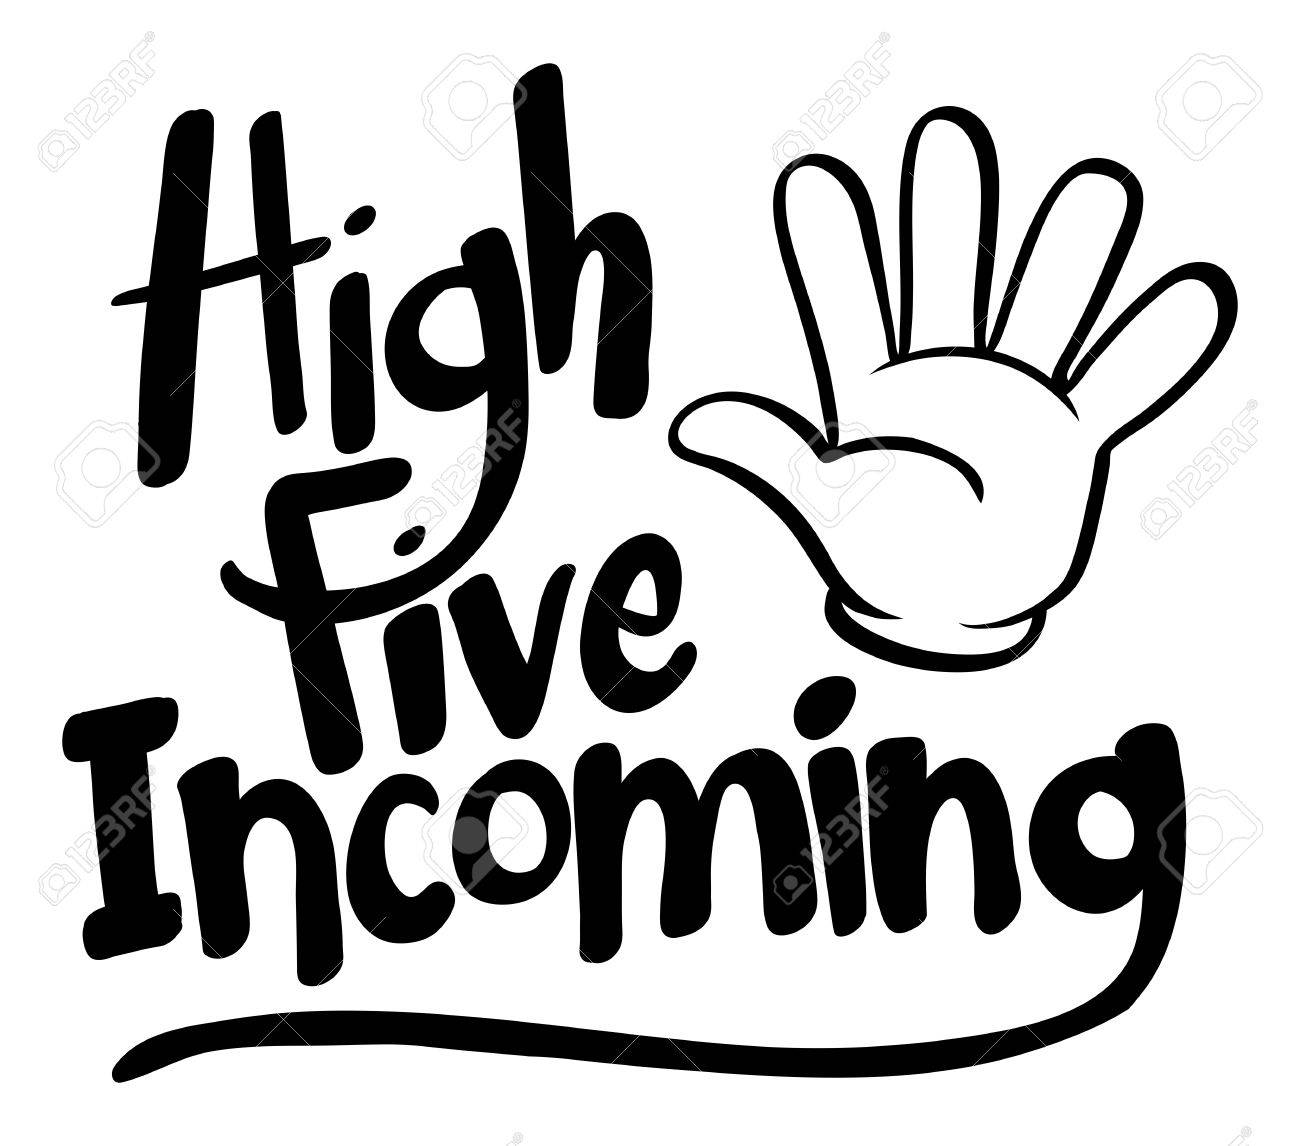 word expression for high five incoming illustration royalty free rh 123rf com high five clipart black and white high five hand clipart